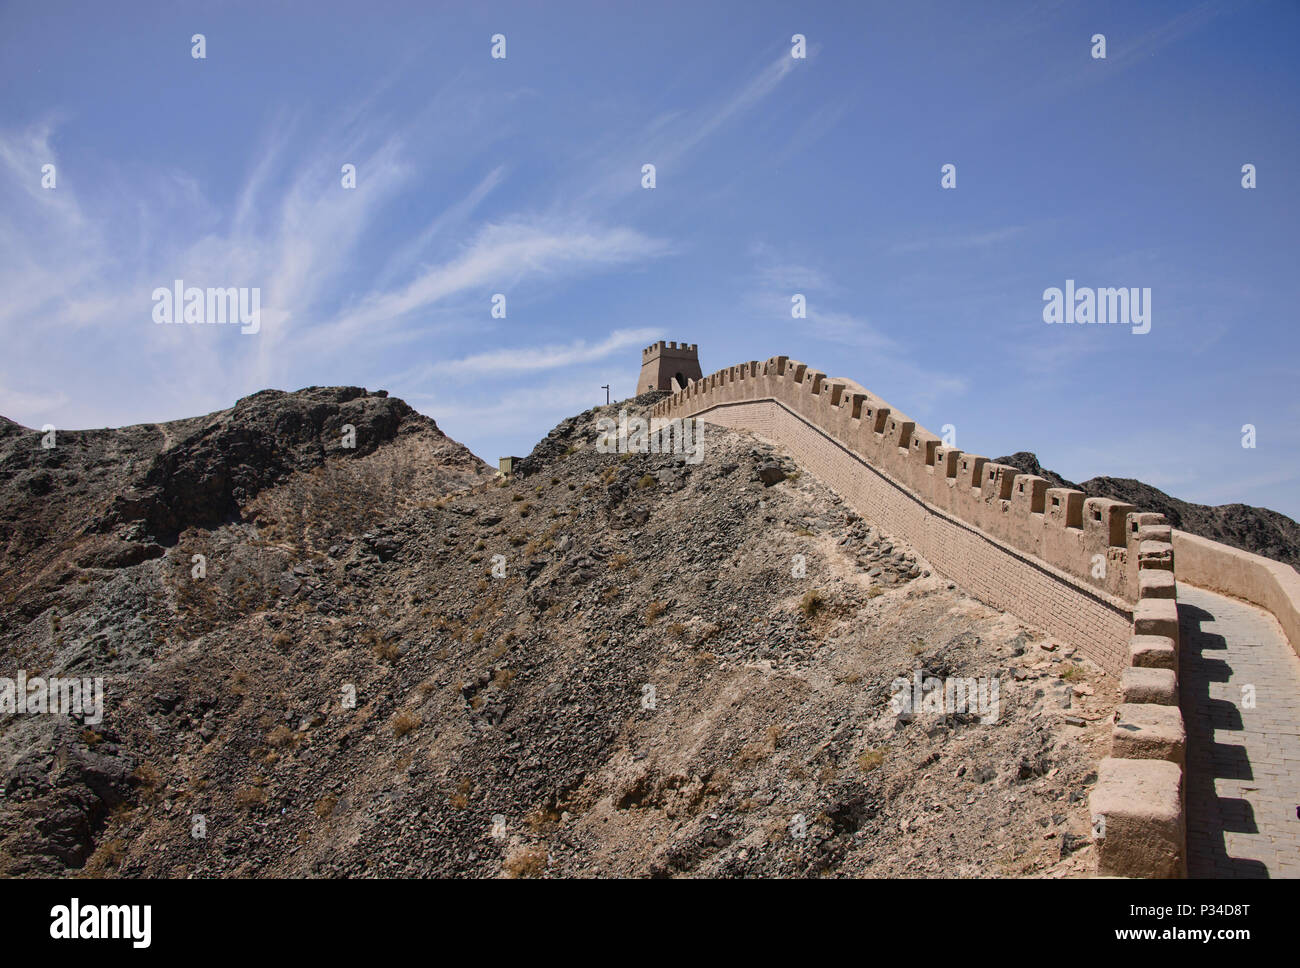 The Overhanging Great Wall, Jiayuguan, Gansu, China - Stock Image